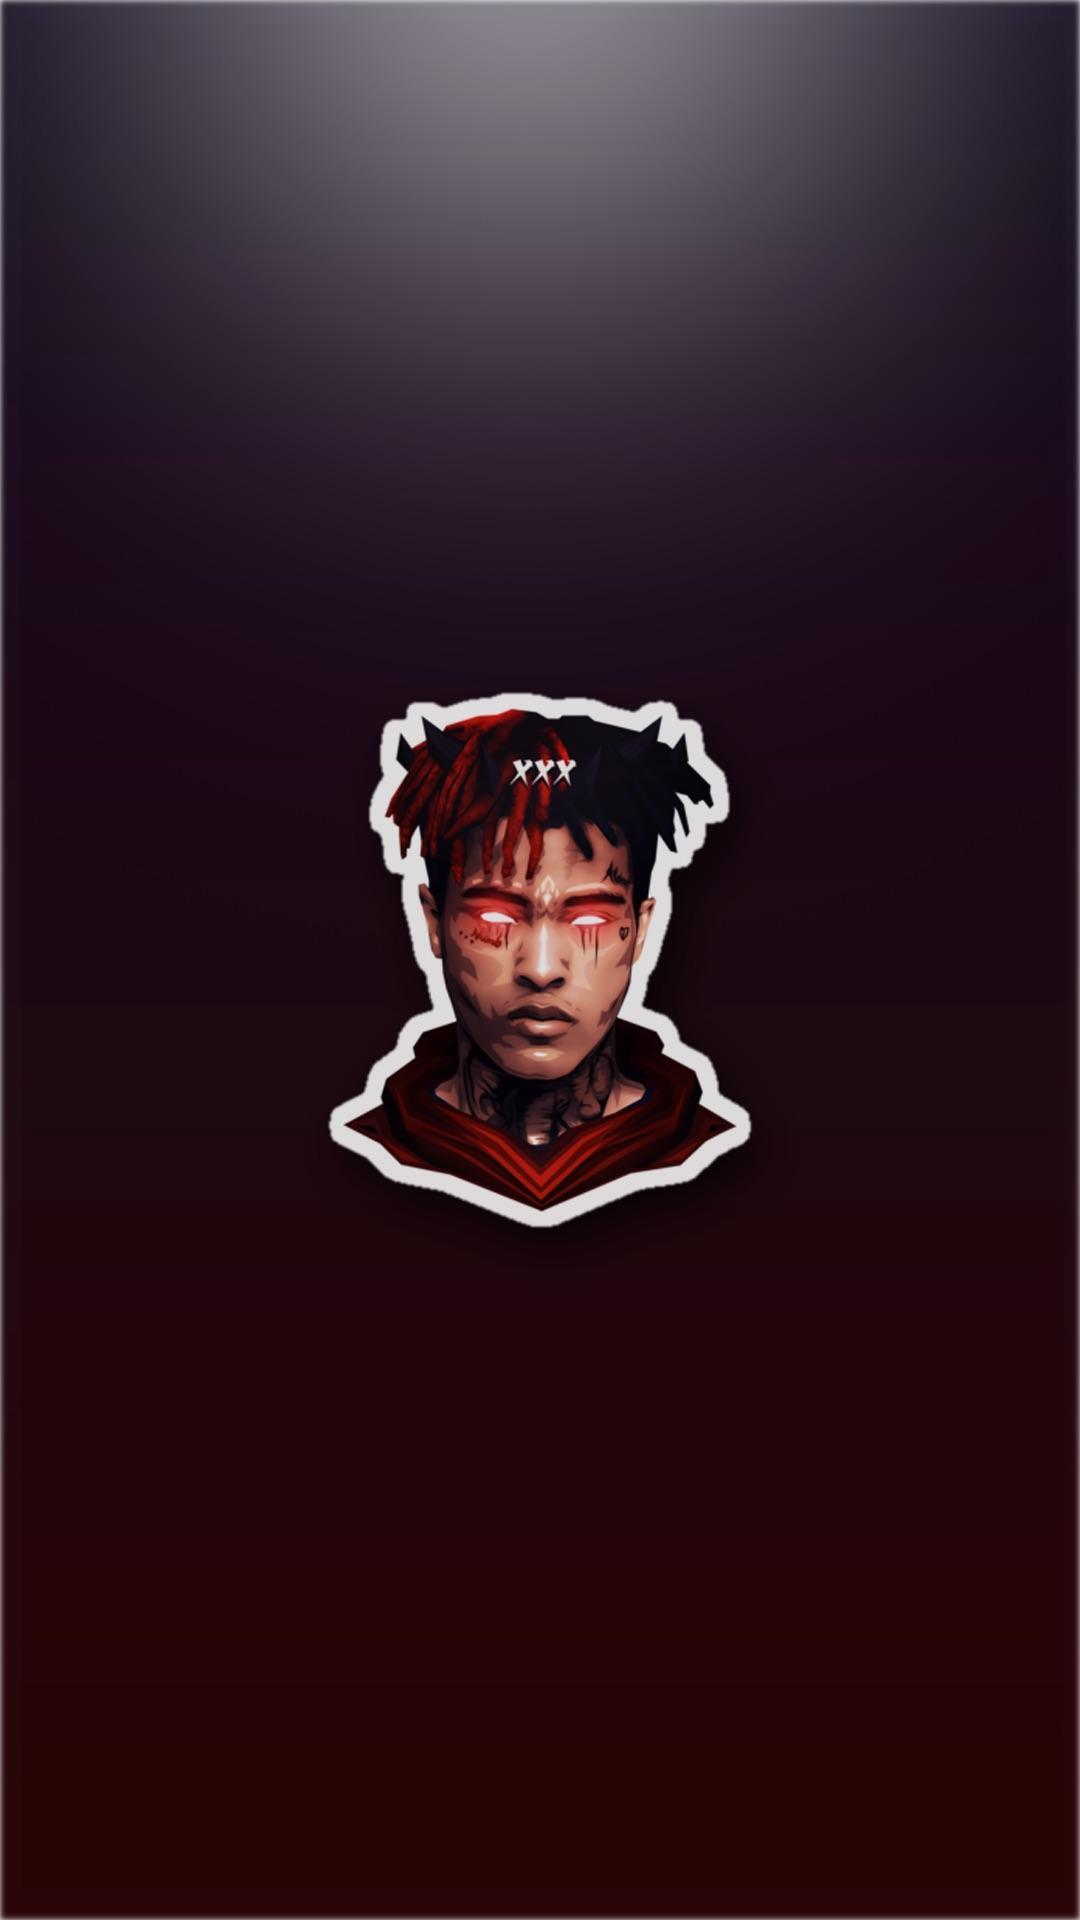 1080x1920 XXXTentacion Wallpapers